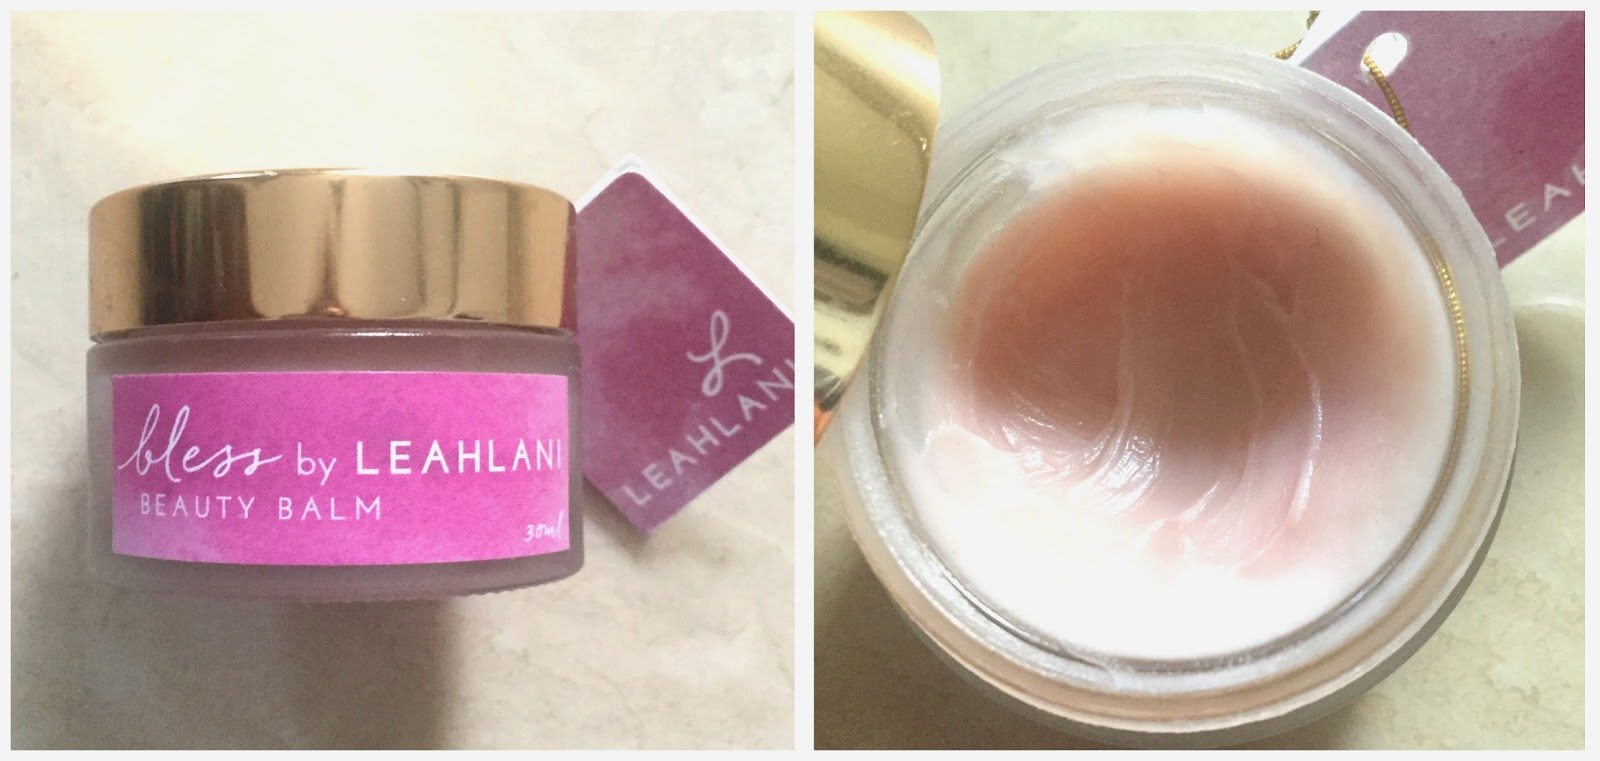 Leahlani Skincare Bless Beauty Balm Review